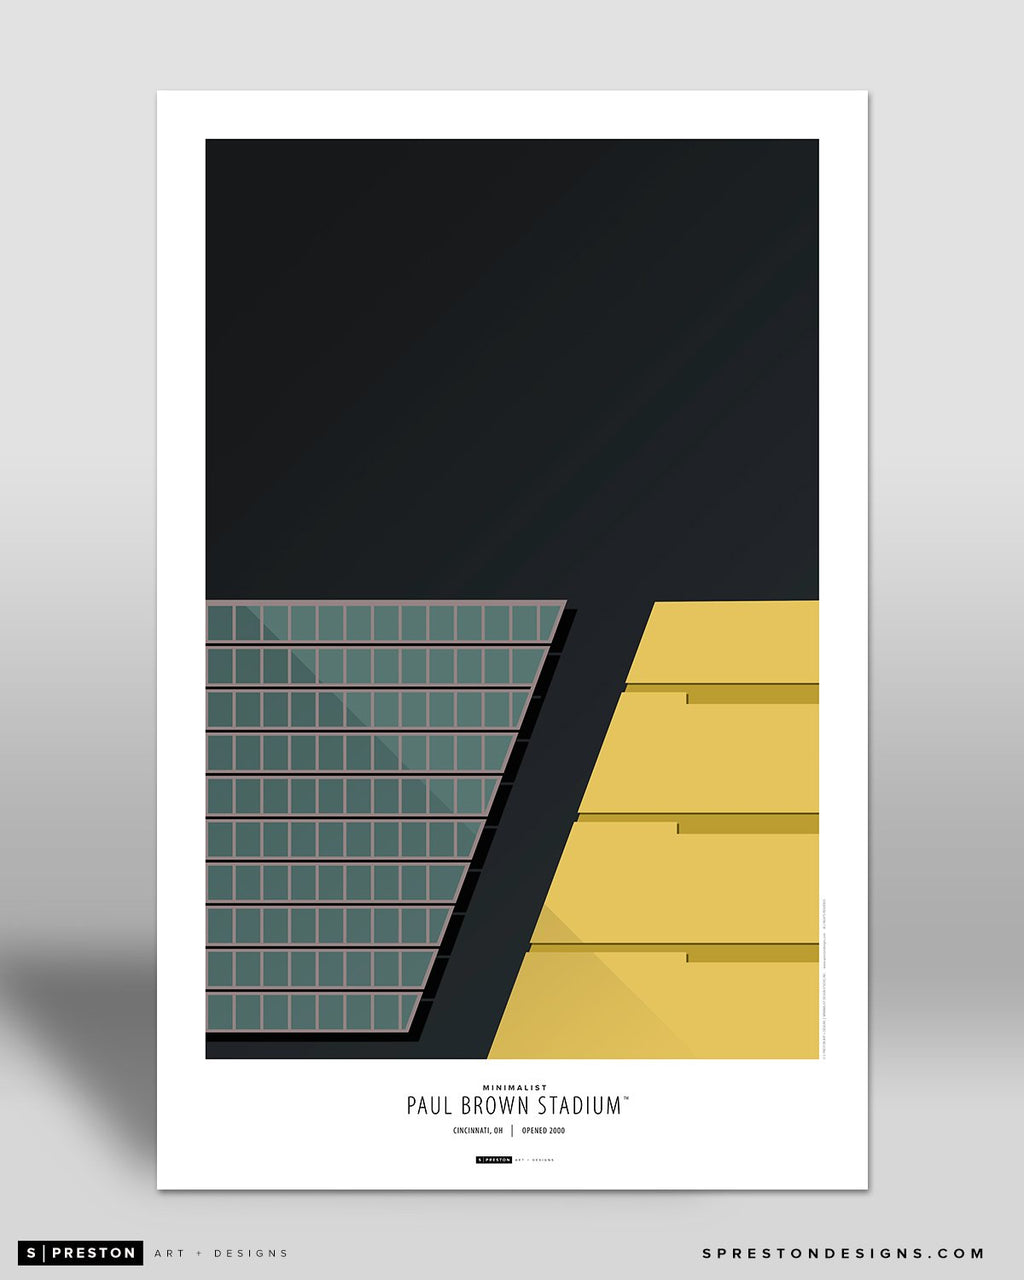 Minimalist Paul Brown Stadium Art Poster - Clearance